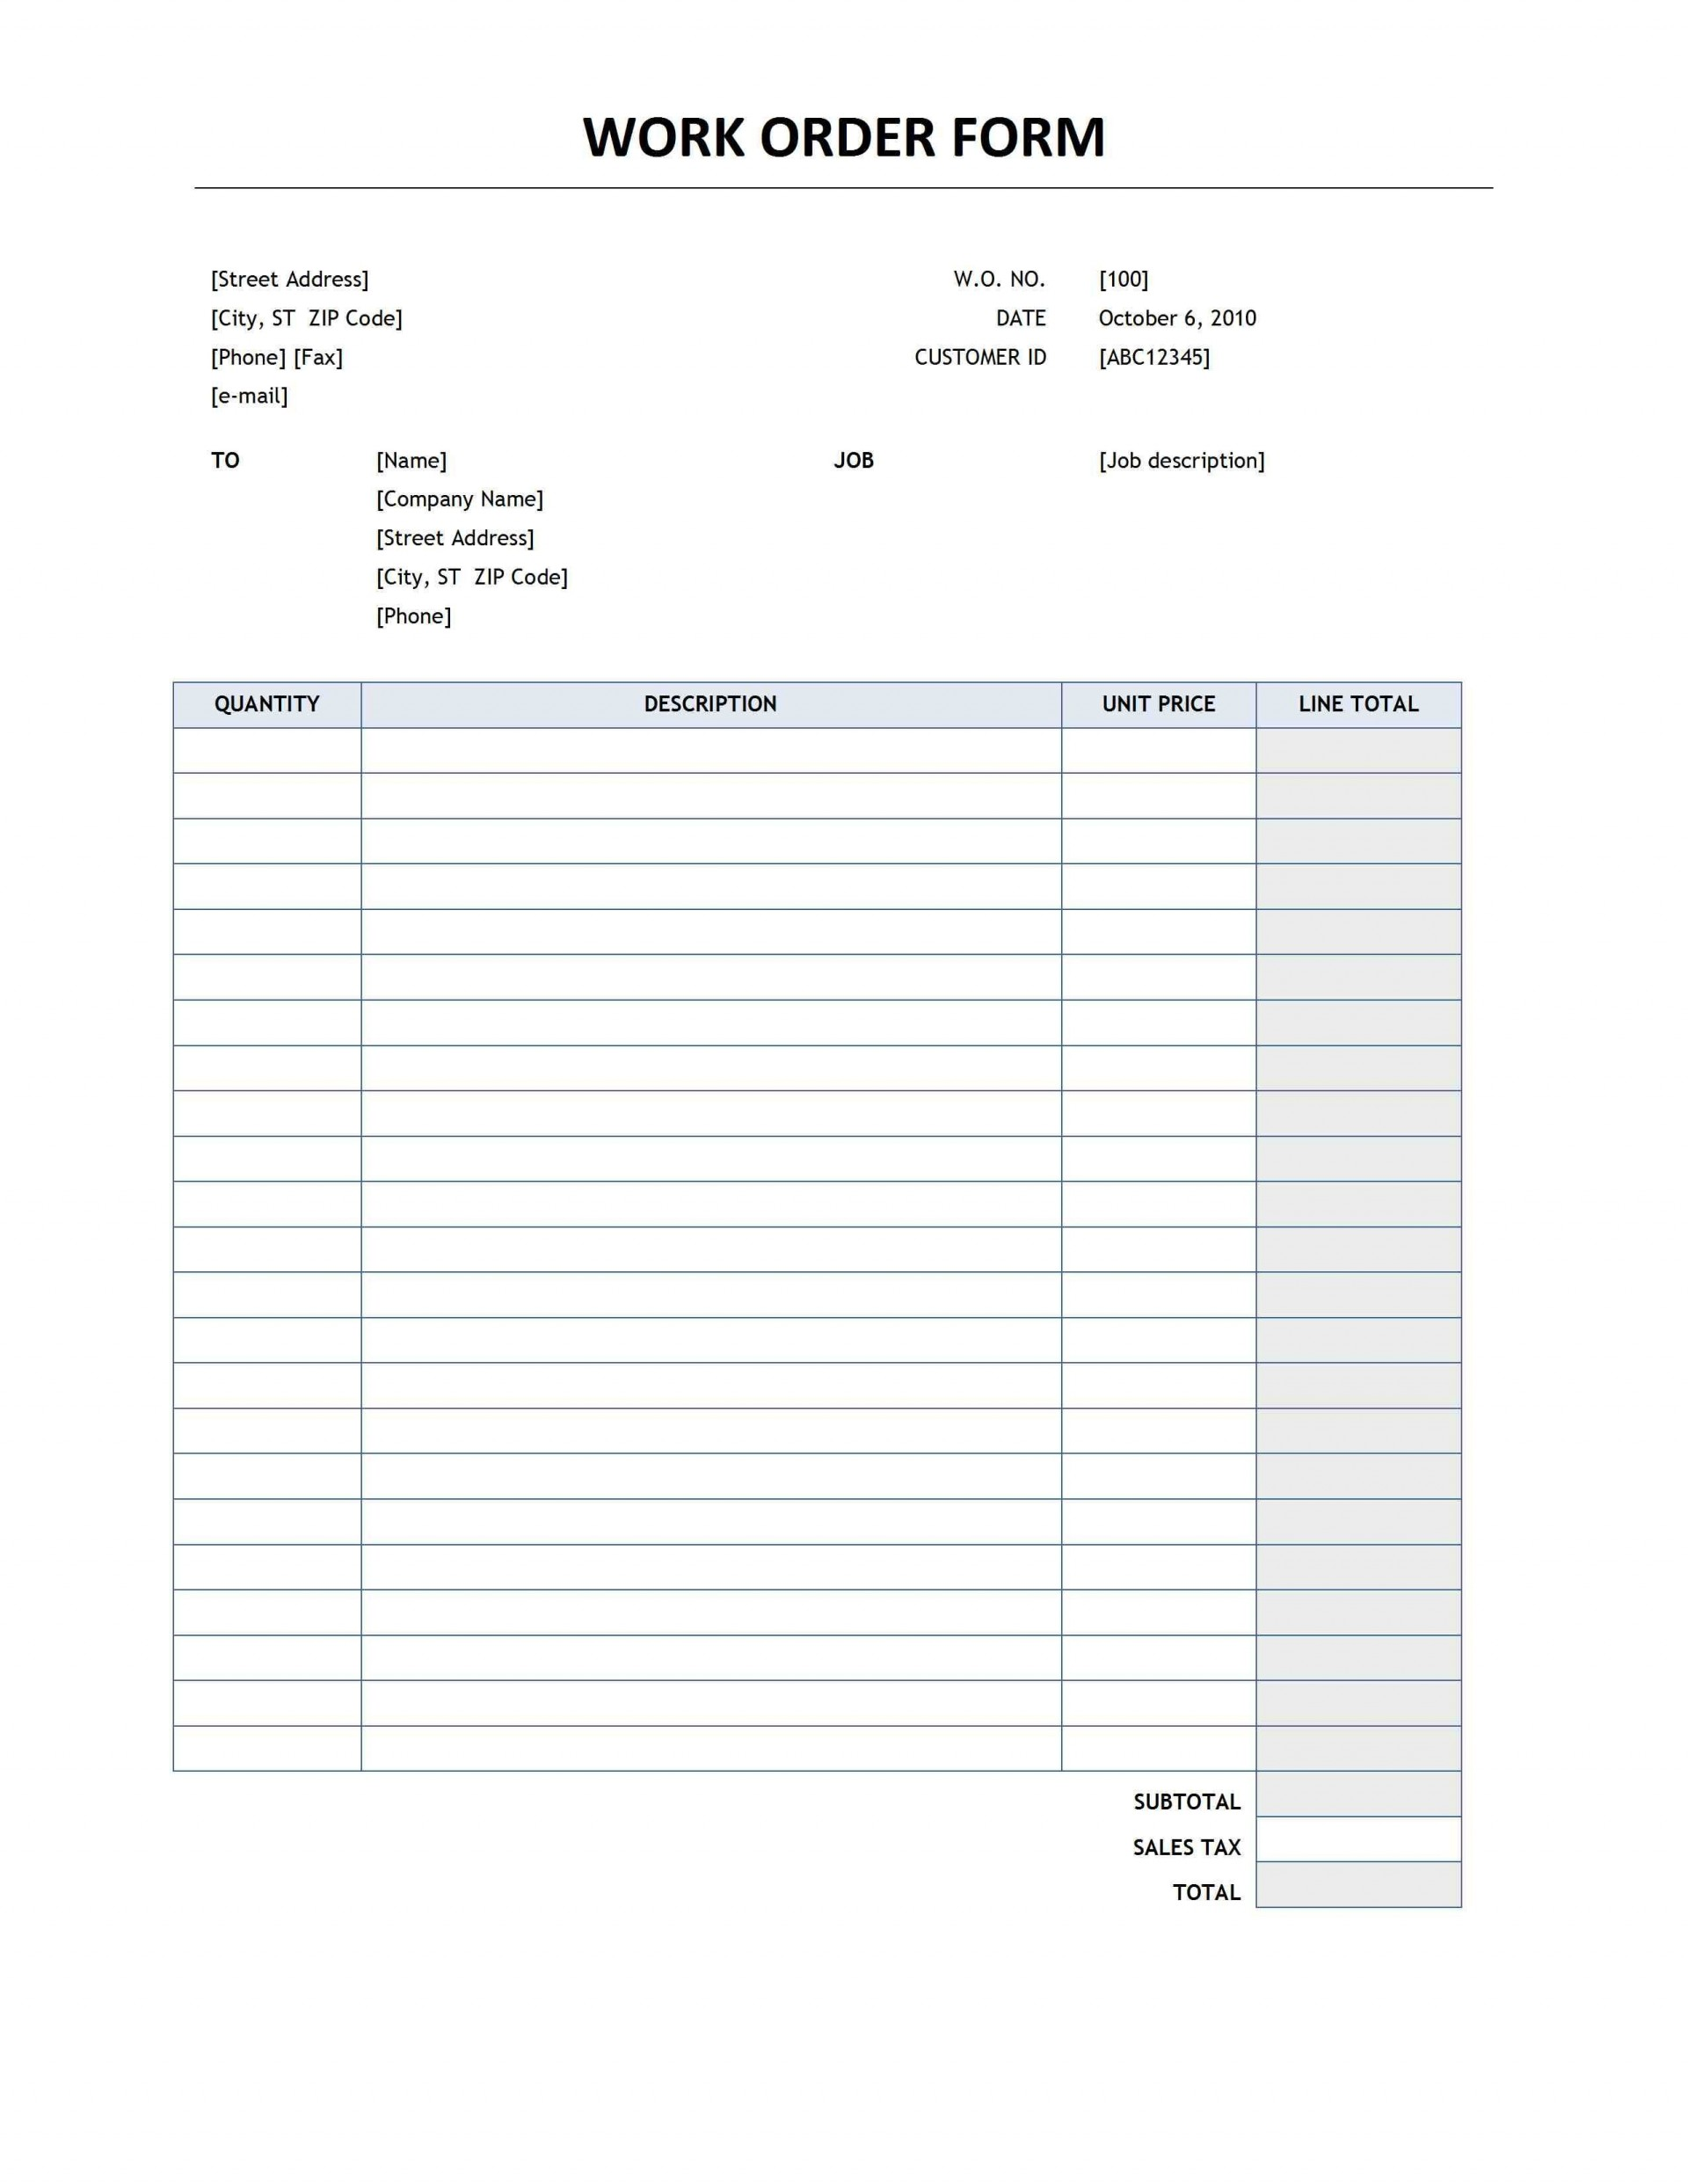 002 Unforgettable Work Order Template Free Image  Automotive Auto Printable Request1920